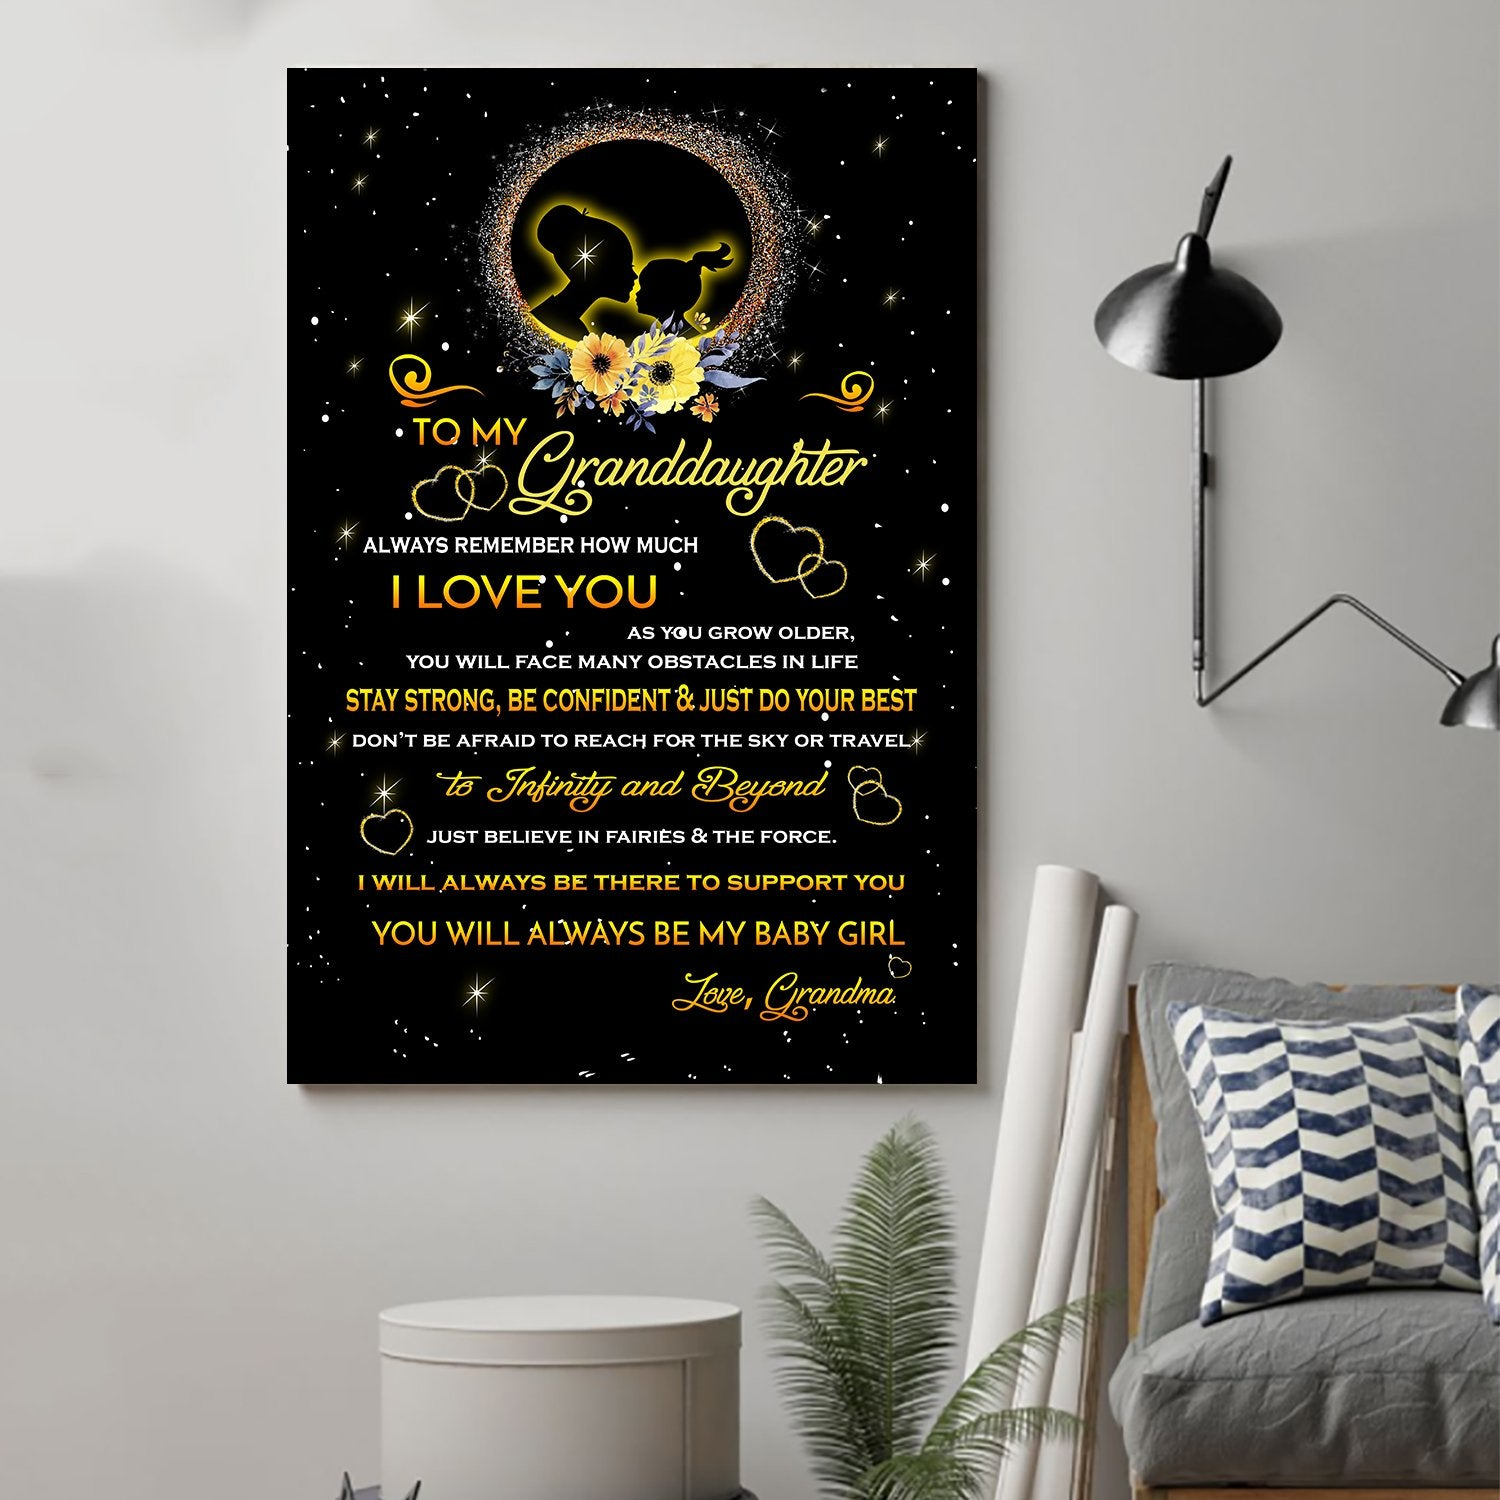 (cv1038) LHD Family poster - To my granddaughter -